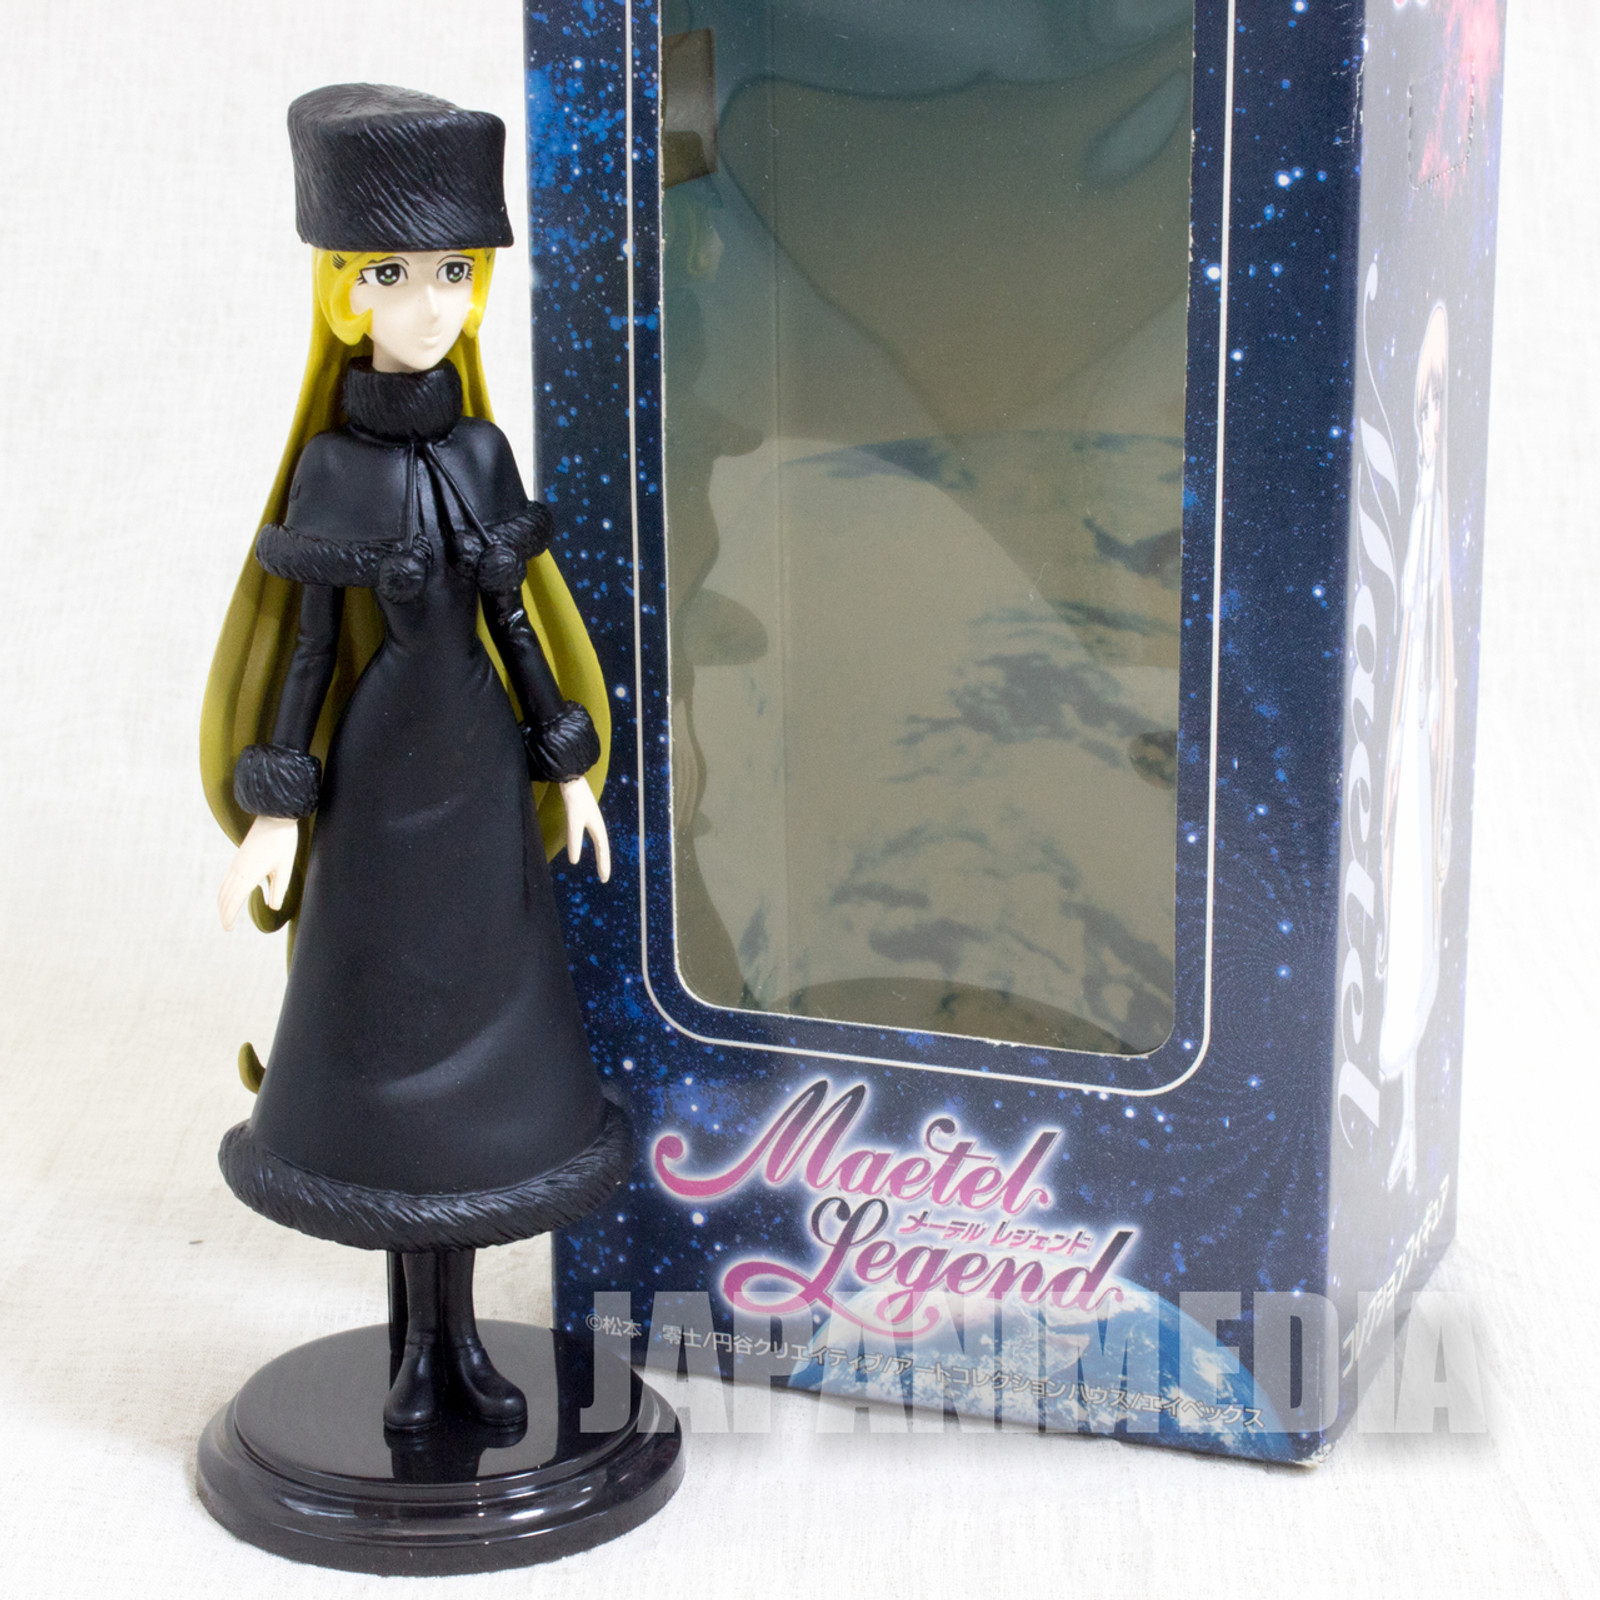 Galaxy Express 999 Maetel (Normal ver.) Maetel Legend Collection Figure JAPAN ANIME REIJI MATSUMOTO